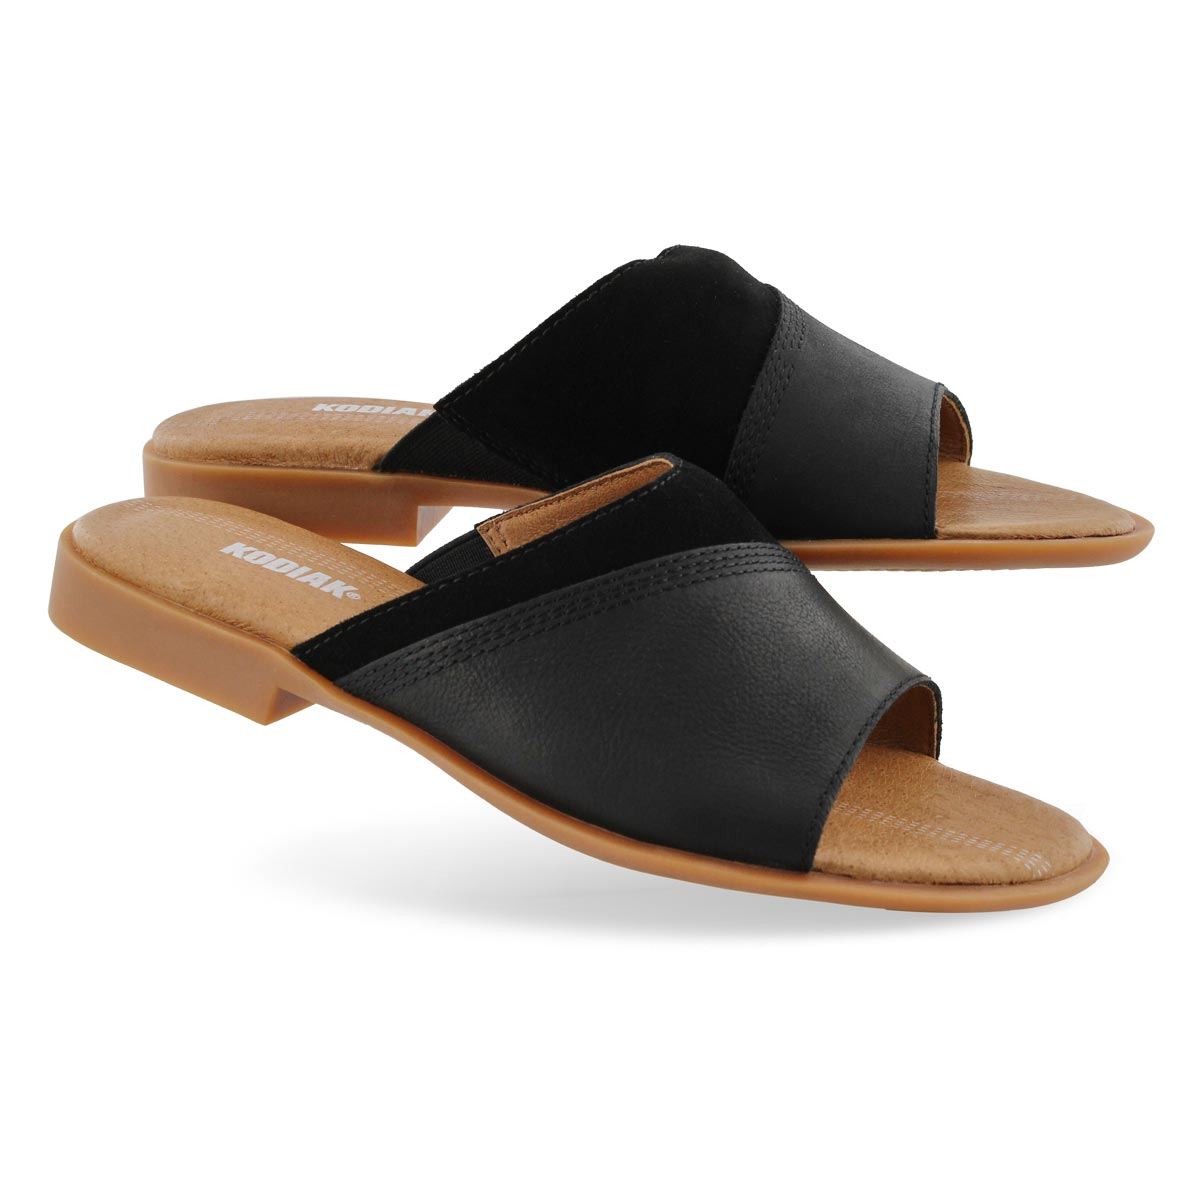 Lds Alexi black casual slide sandal